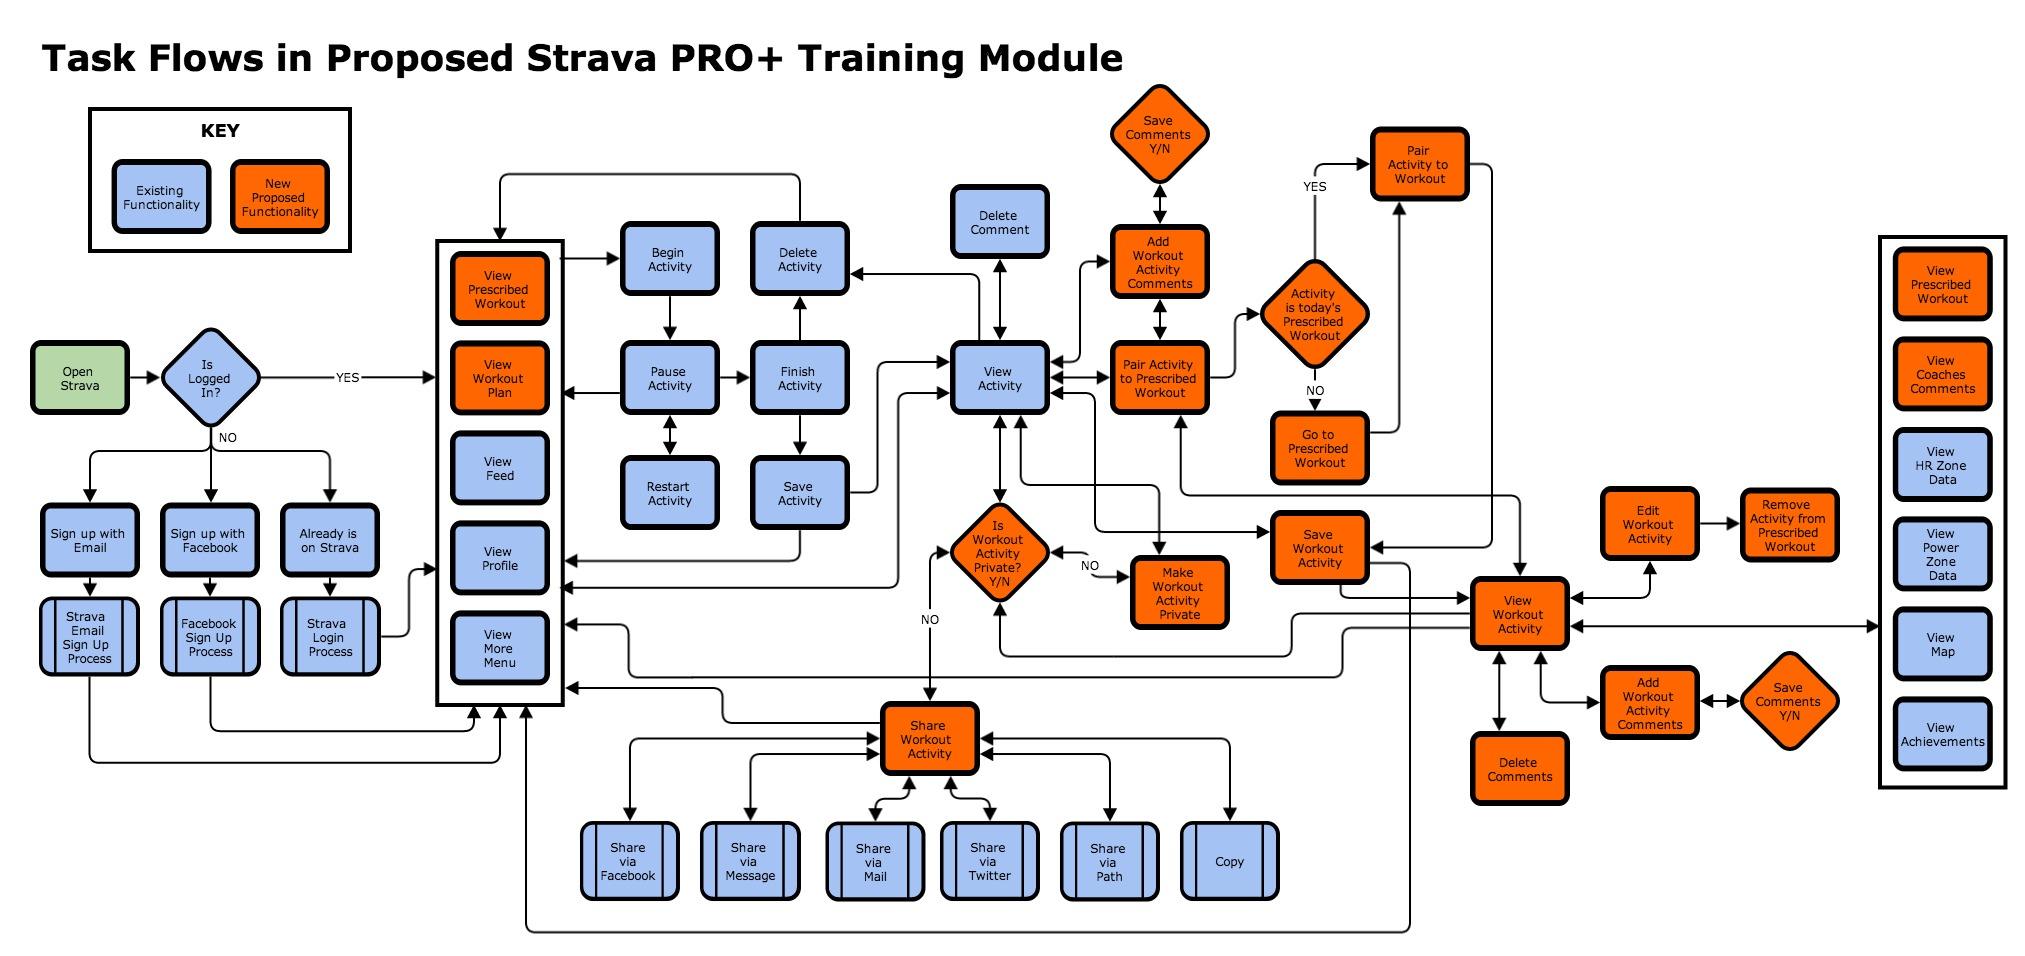 Final version of the STRAVA PRO+ task flow